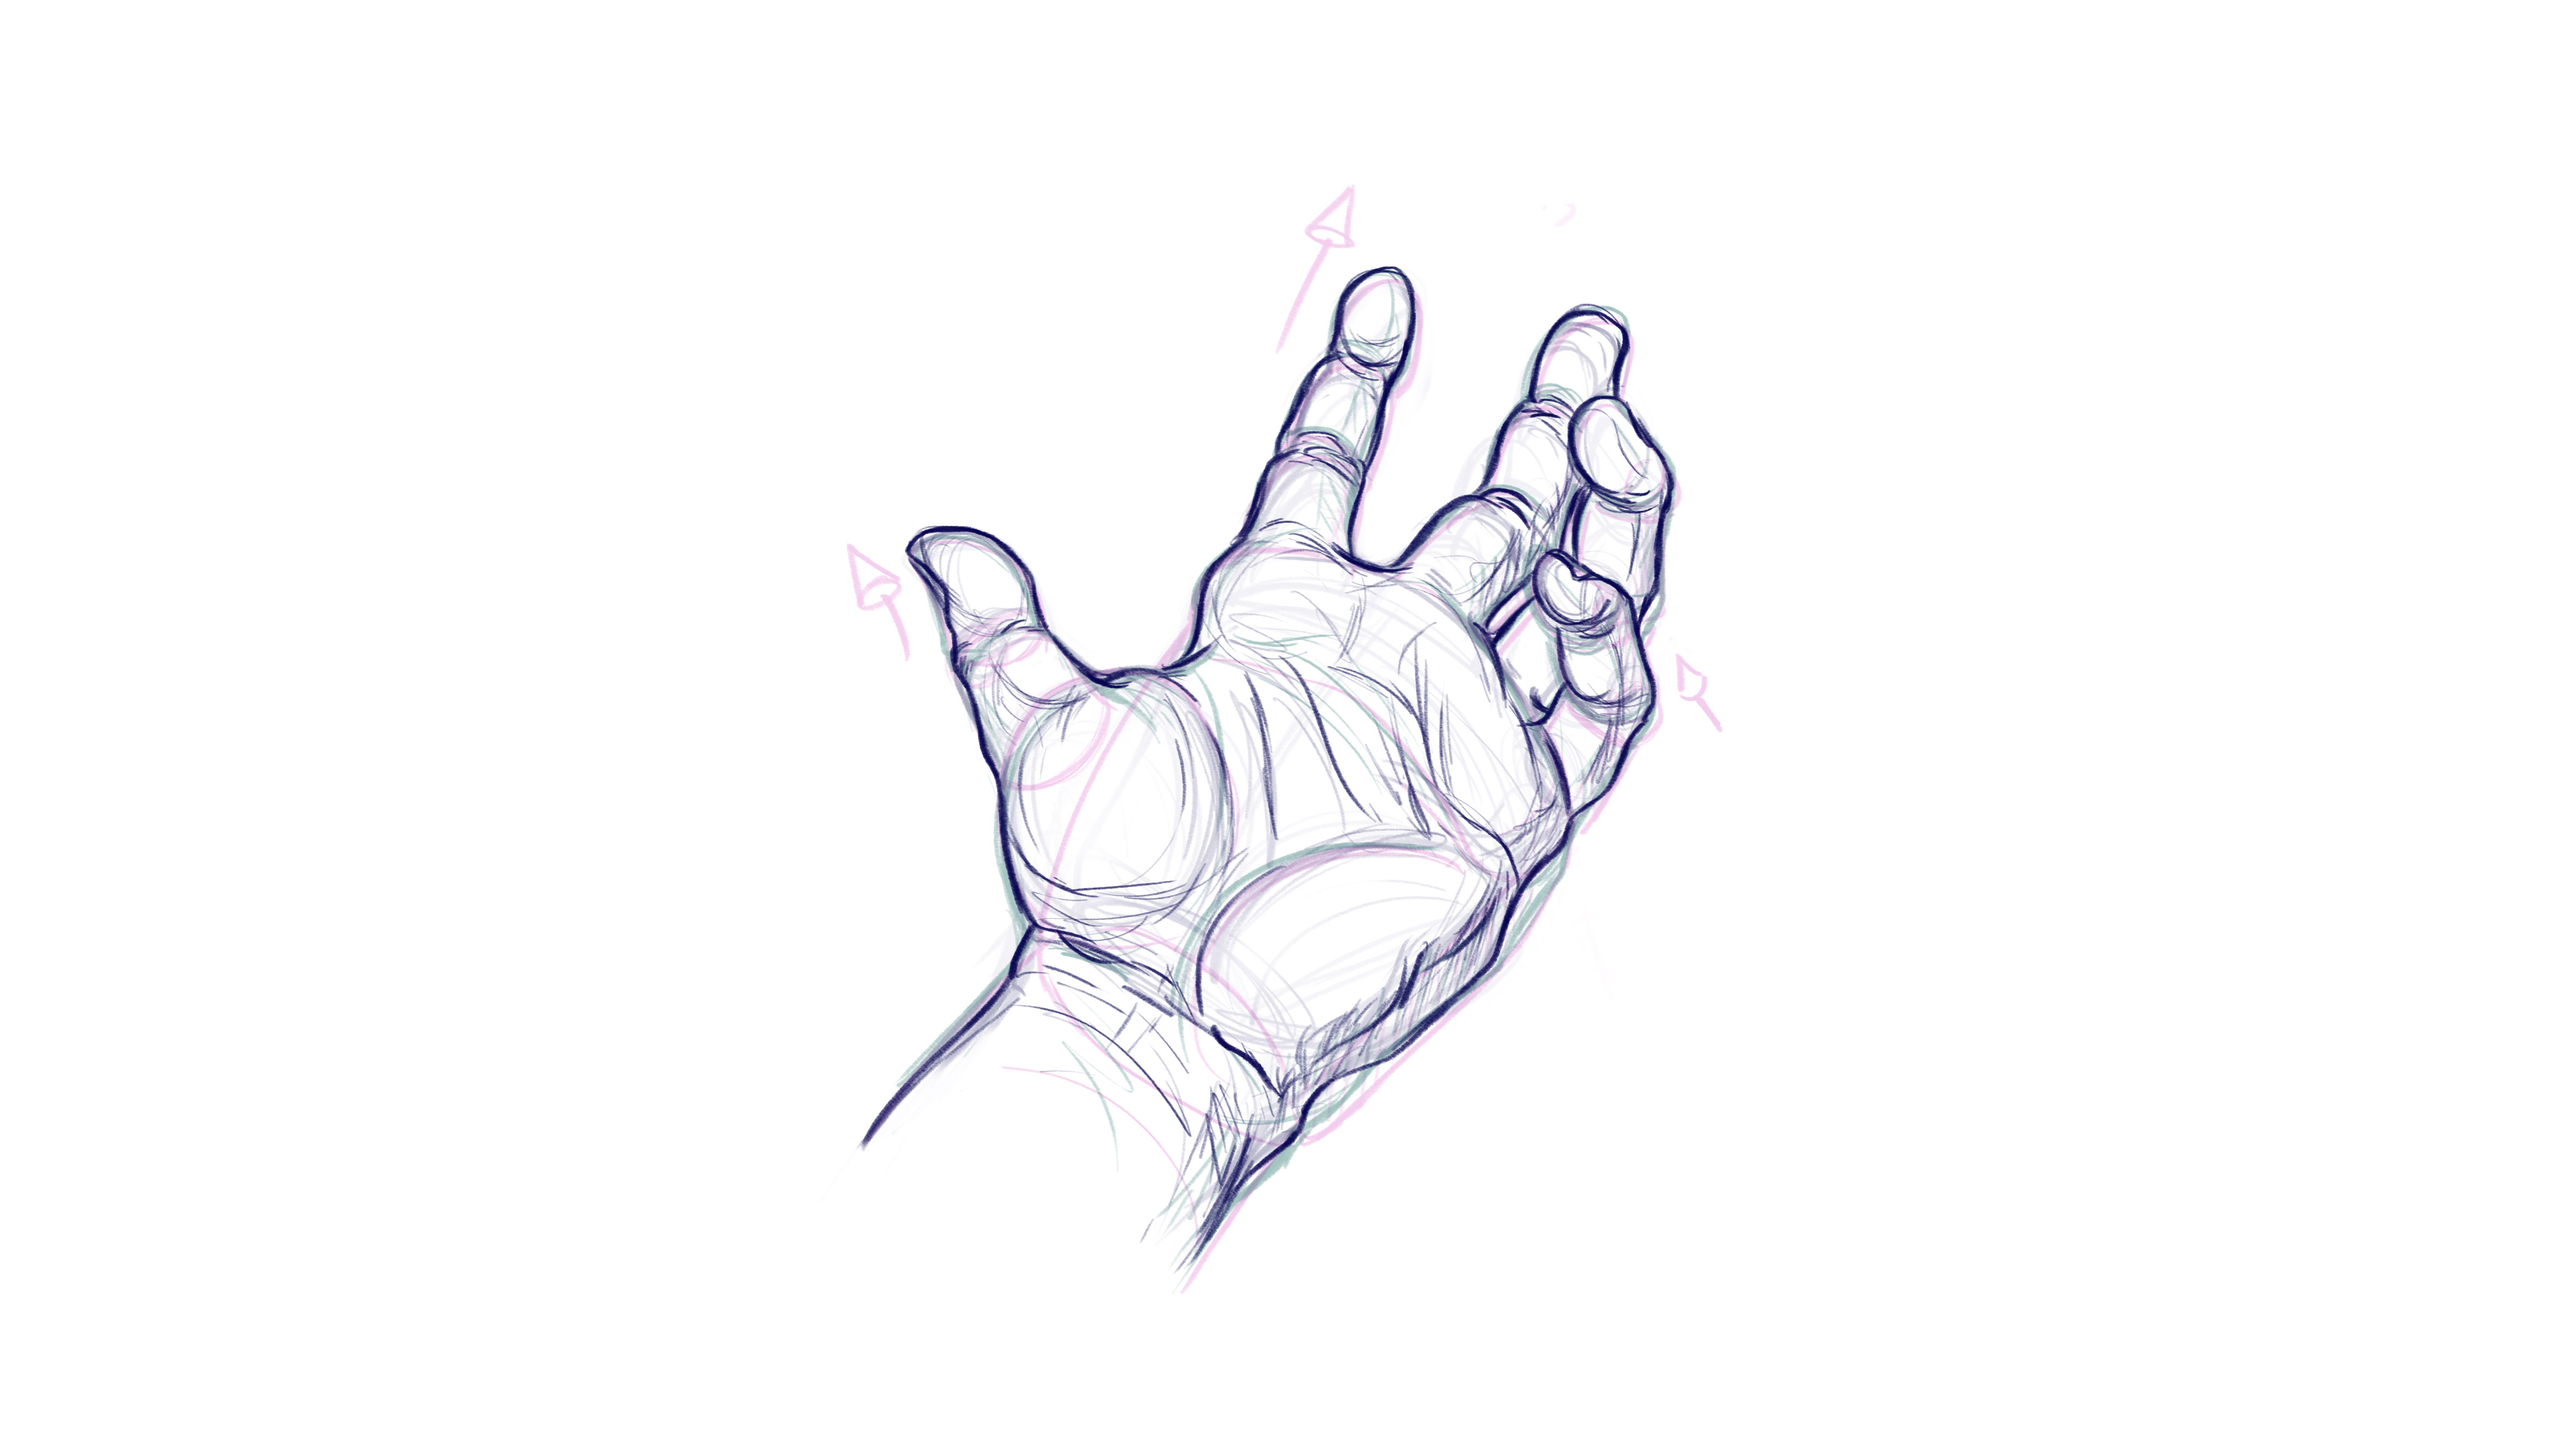 How to draw hands: begin to lay in detail